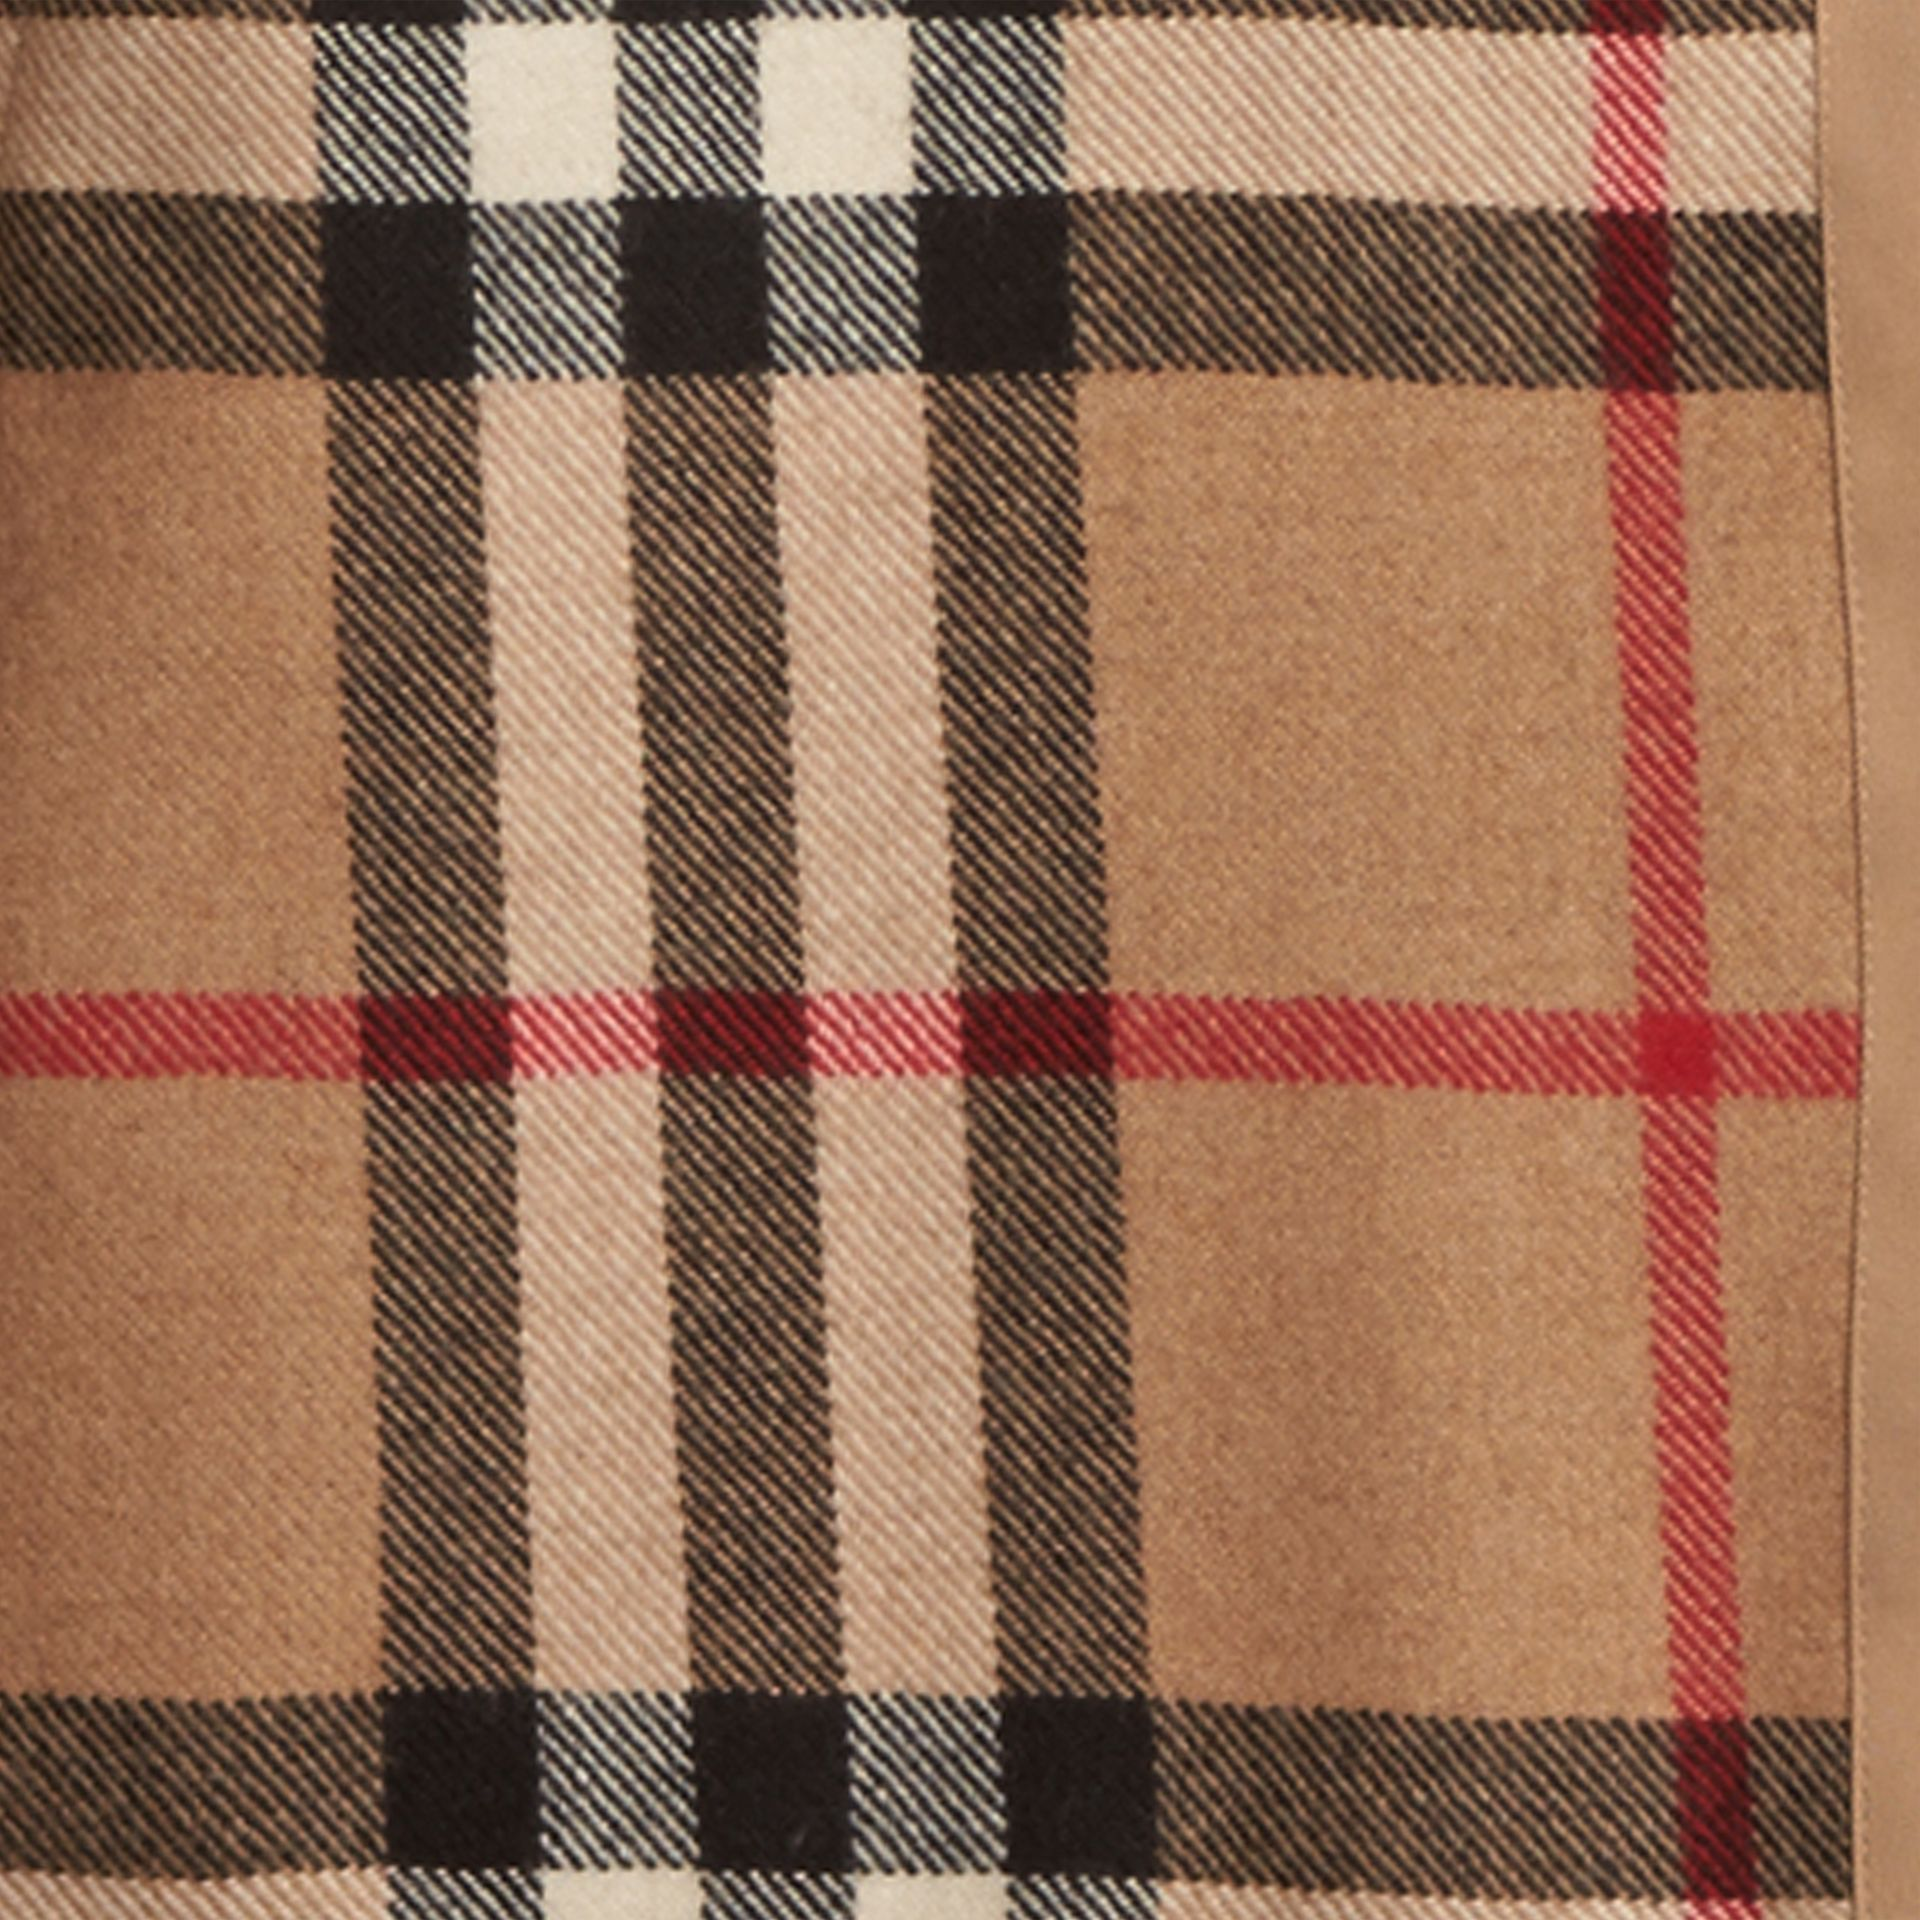 Kensington and Wiltshire-fit House Check Cashmere Wool Warmer in Camel - Men | Burberry Hong Kong - gallery image 2